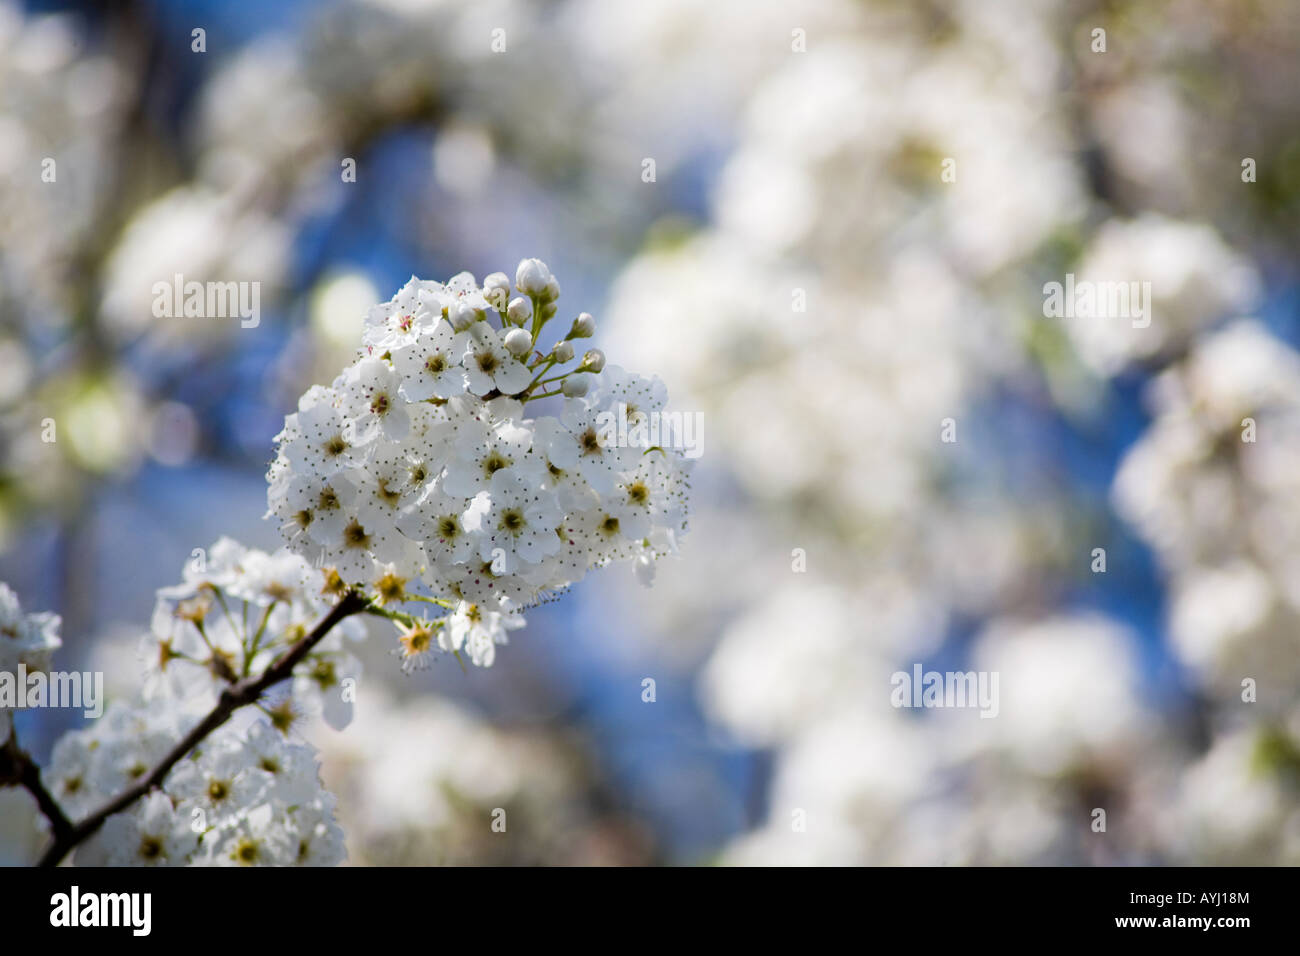 Pyrus Calleryana, Aristocrat Pear tree flowering buds. - Stock Image